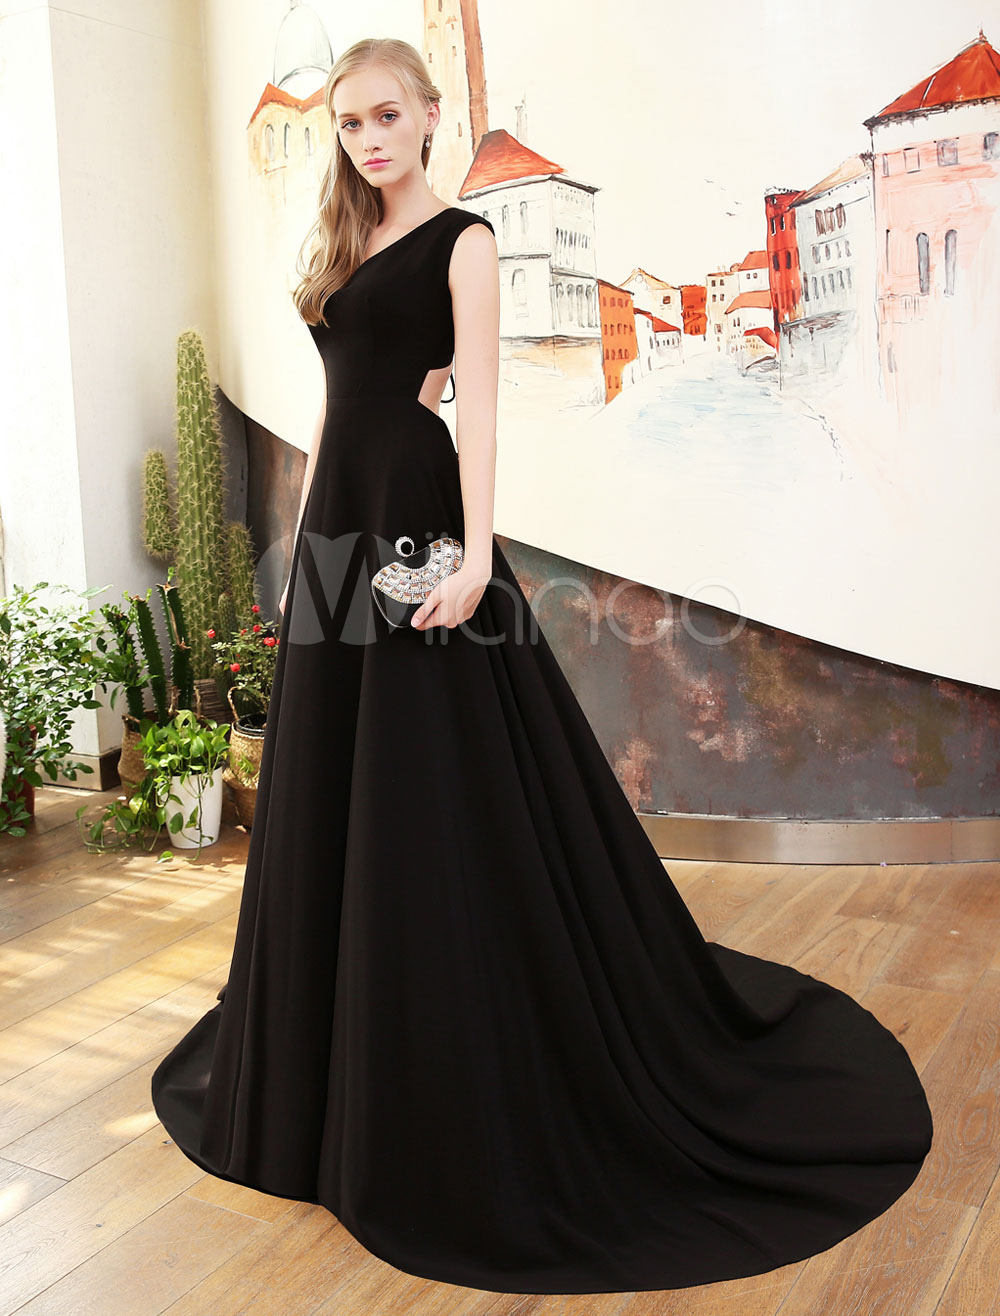 Black Prom Dresses V Neck Satin Evening Dresses Back Cutoff Lace Up Formal Party Dress With Train